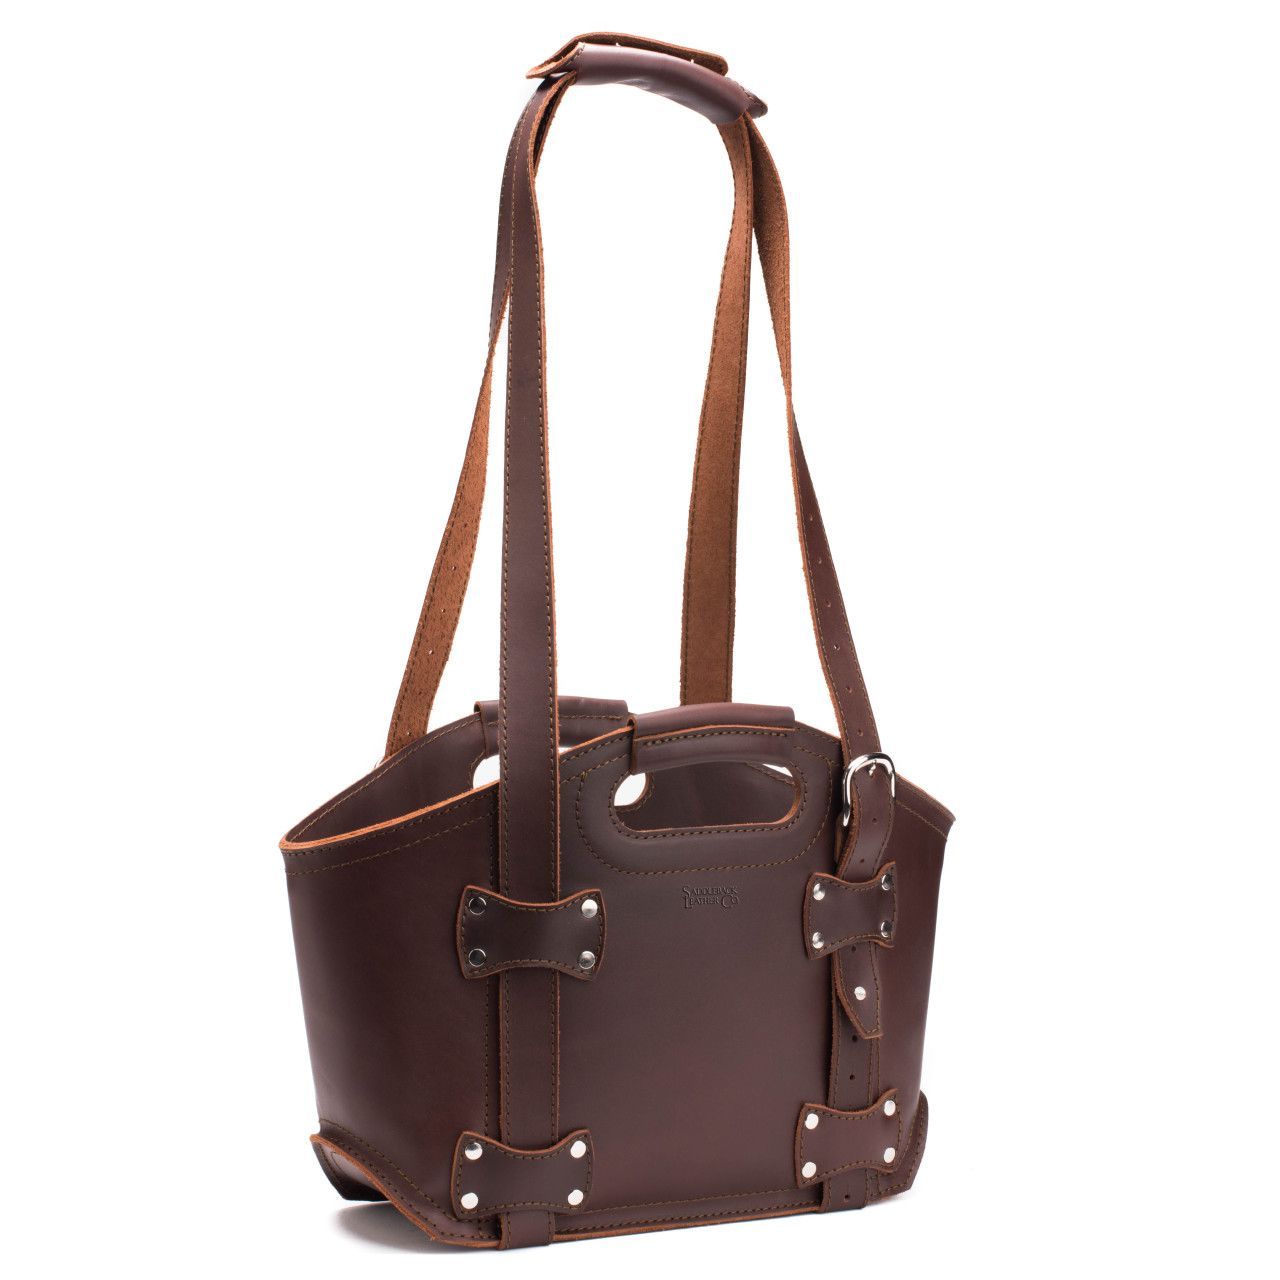 premium leather tote bag small in chestnut leather